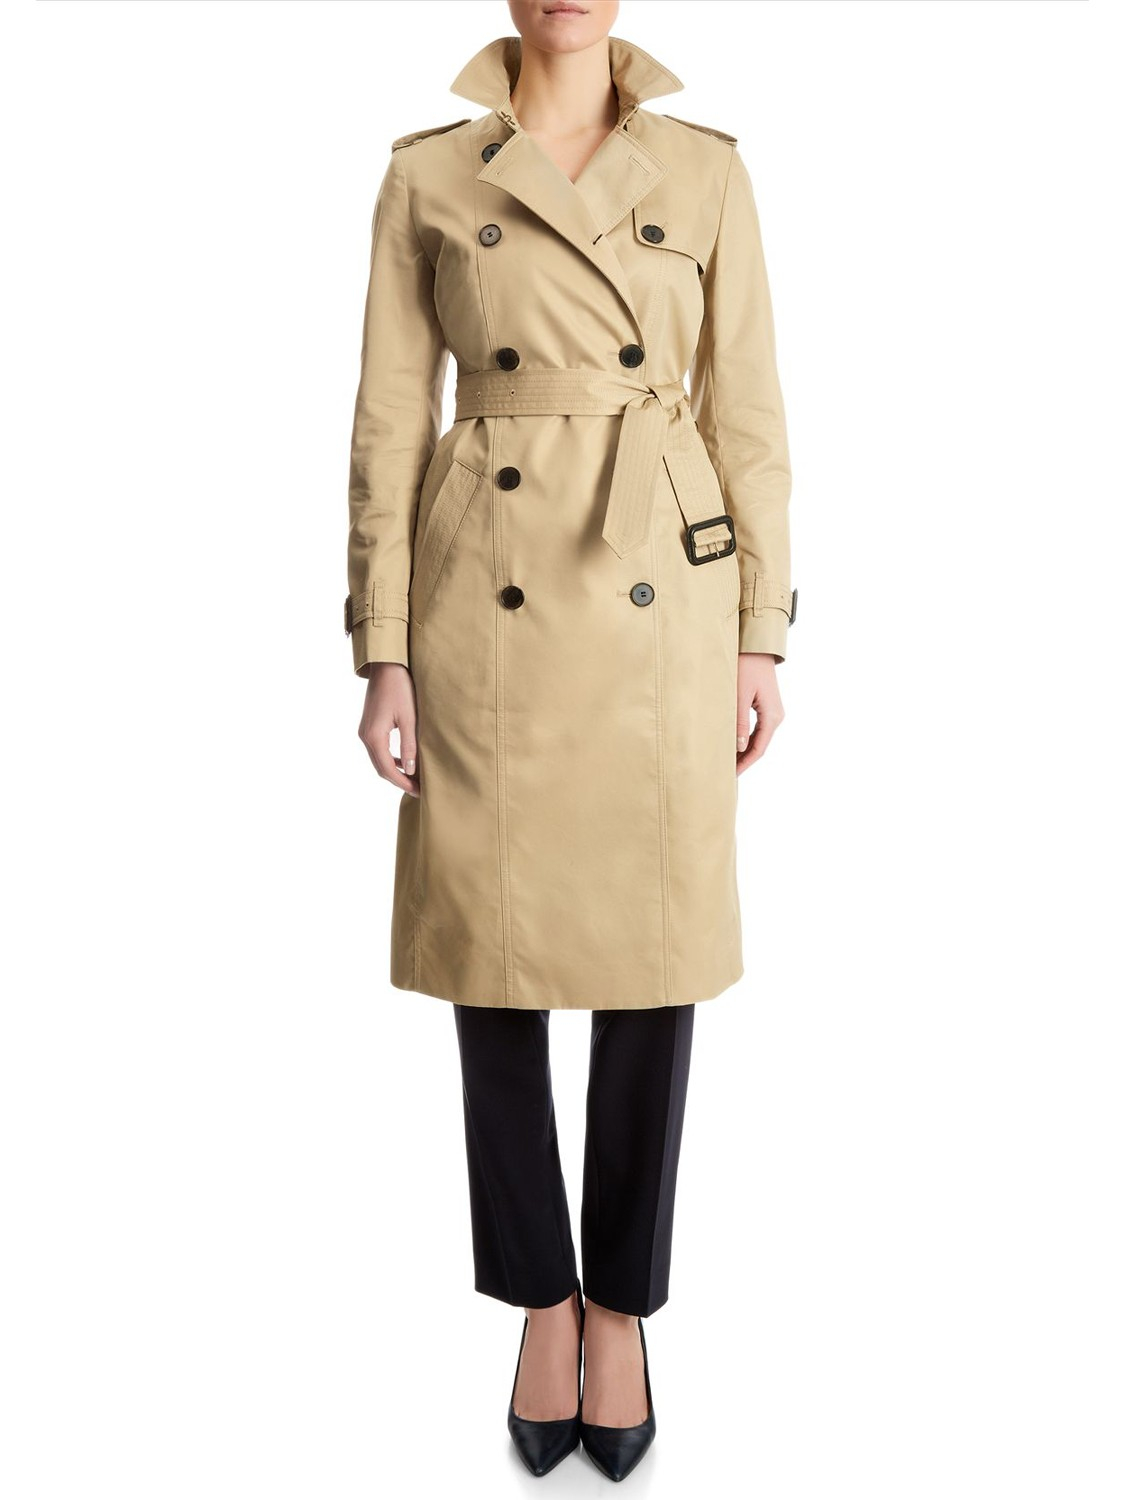 Jaeger Double Breasted Trench Coat in Natural   Lyst